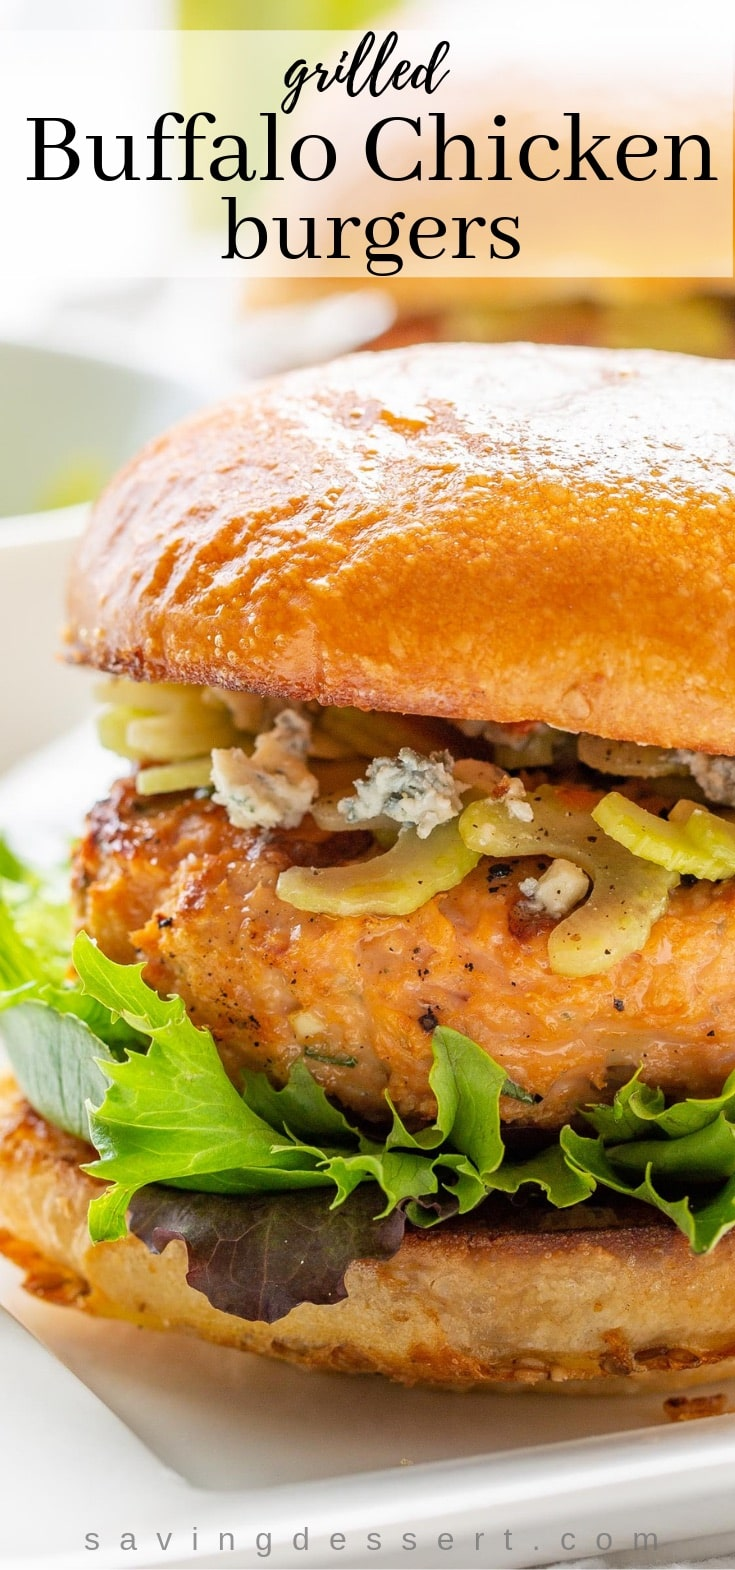 A close up of a grilled Buffalo Chicken burger with blue cheese, lettuce and a celery salad on a toasted bun